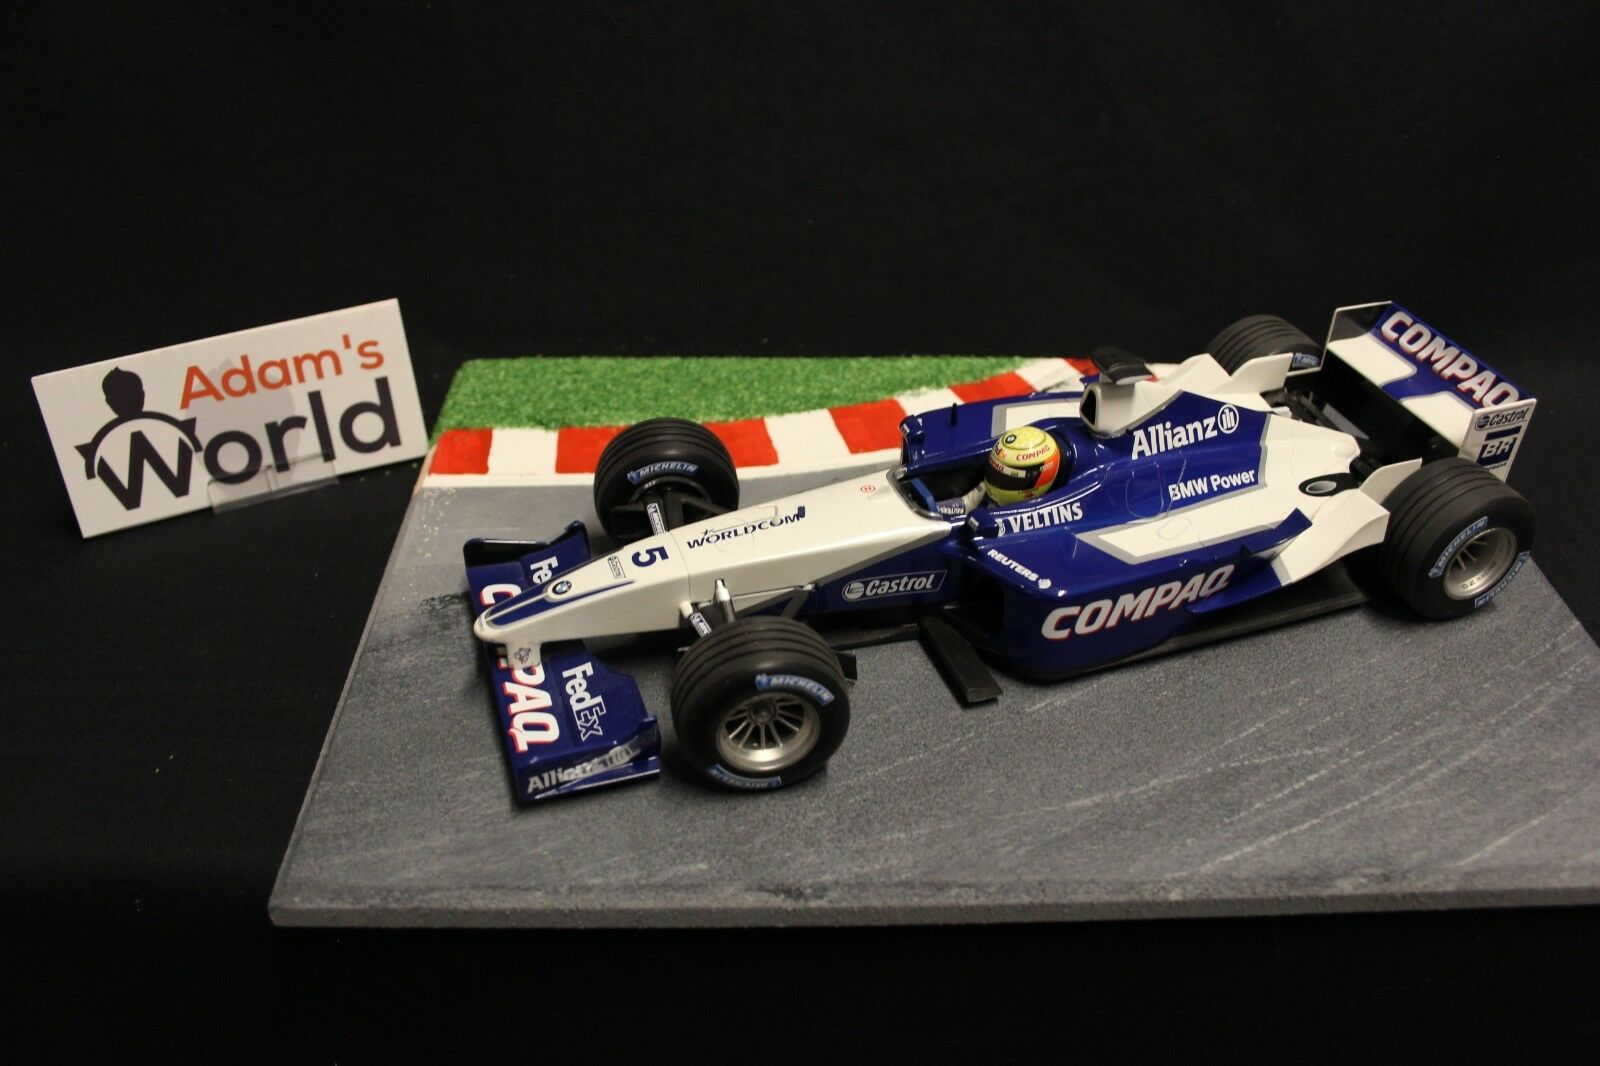 Minichamps Williams BMW show car 2002 1:18  5 Ralf Schumacher  GER   F1NB